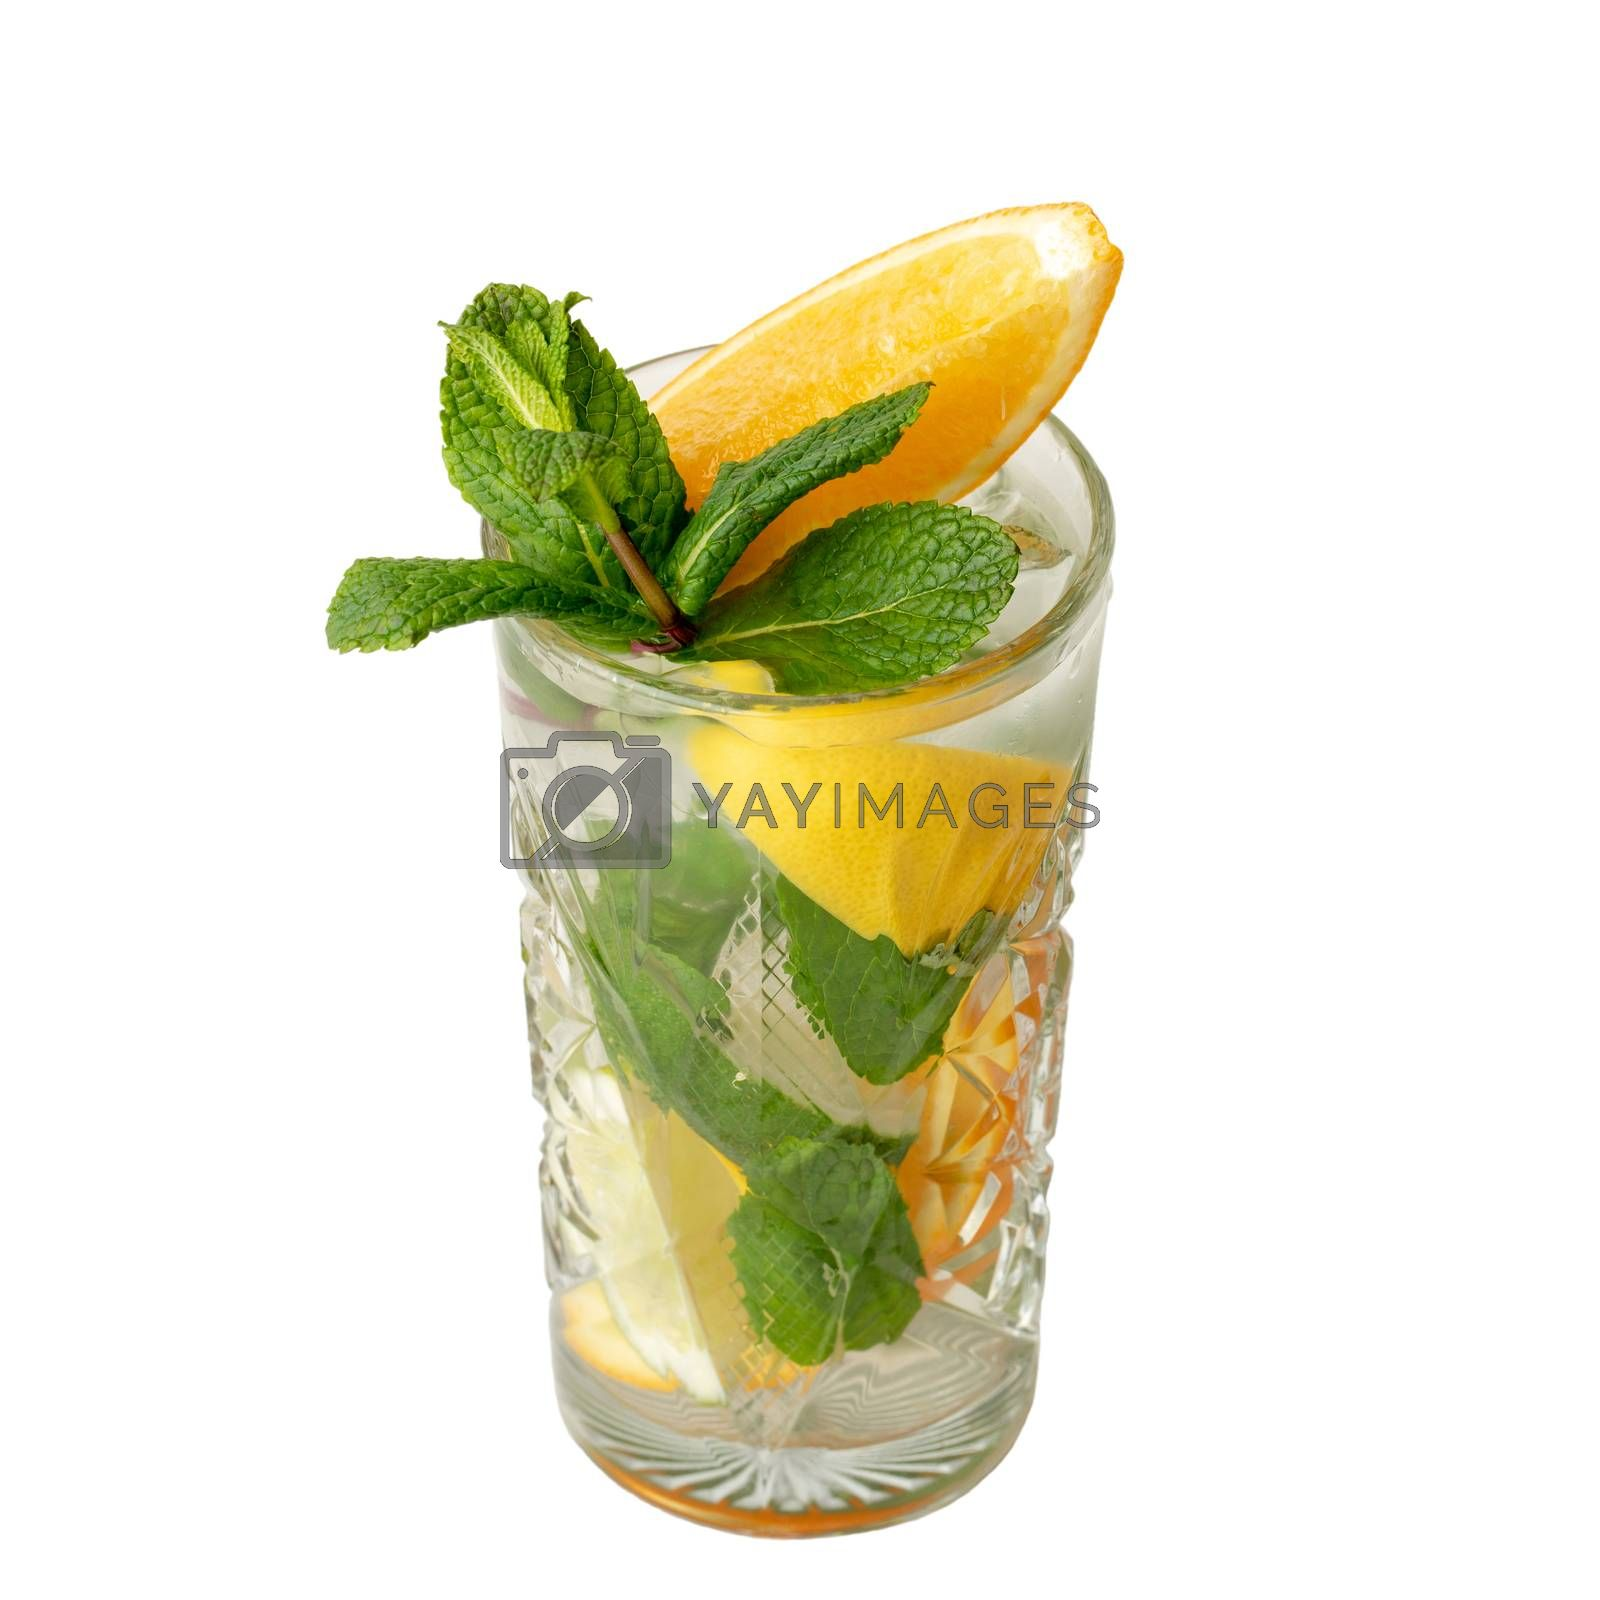 Cold alcohol cocktail drink with slices of lemon and lime, mint leaf isolation on a white